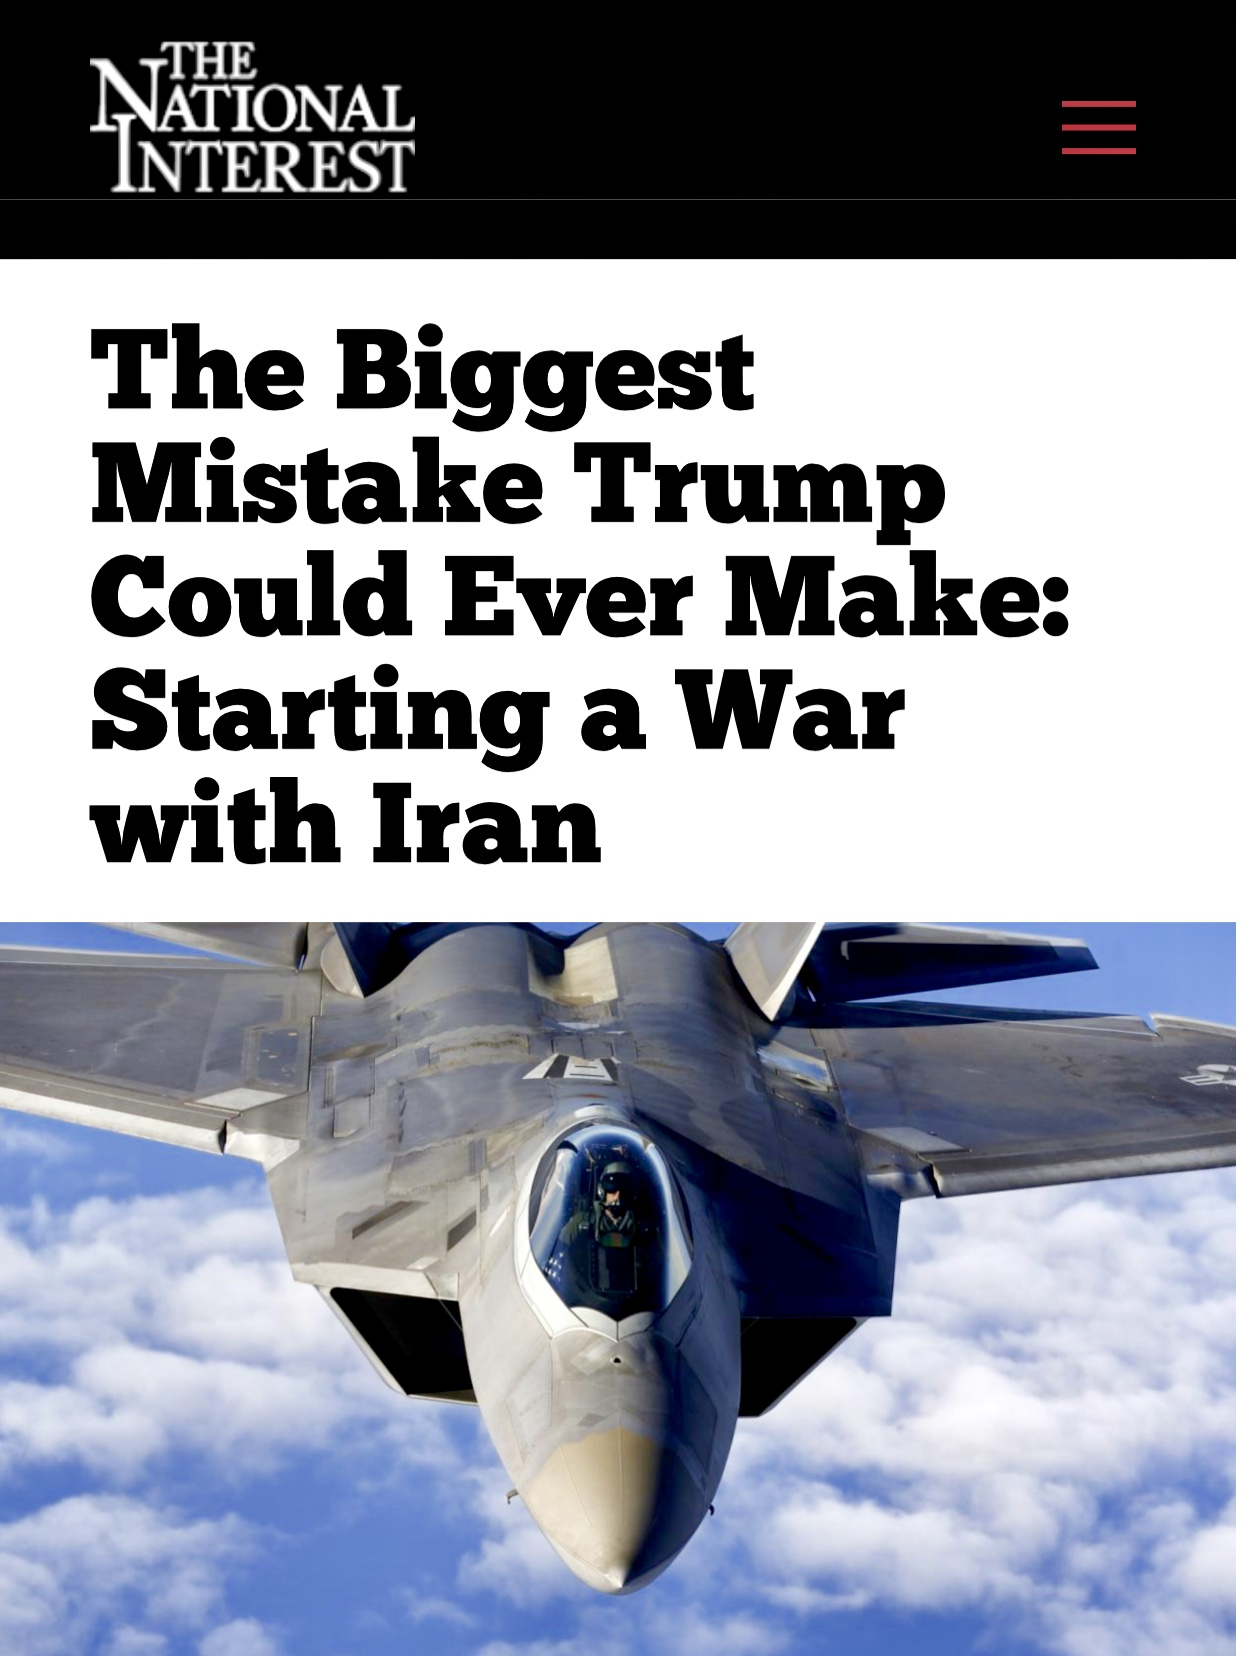 Could It Be Biggest Mistake To Start a War with Iran